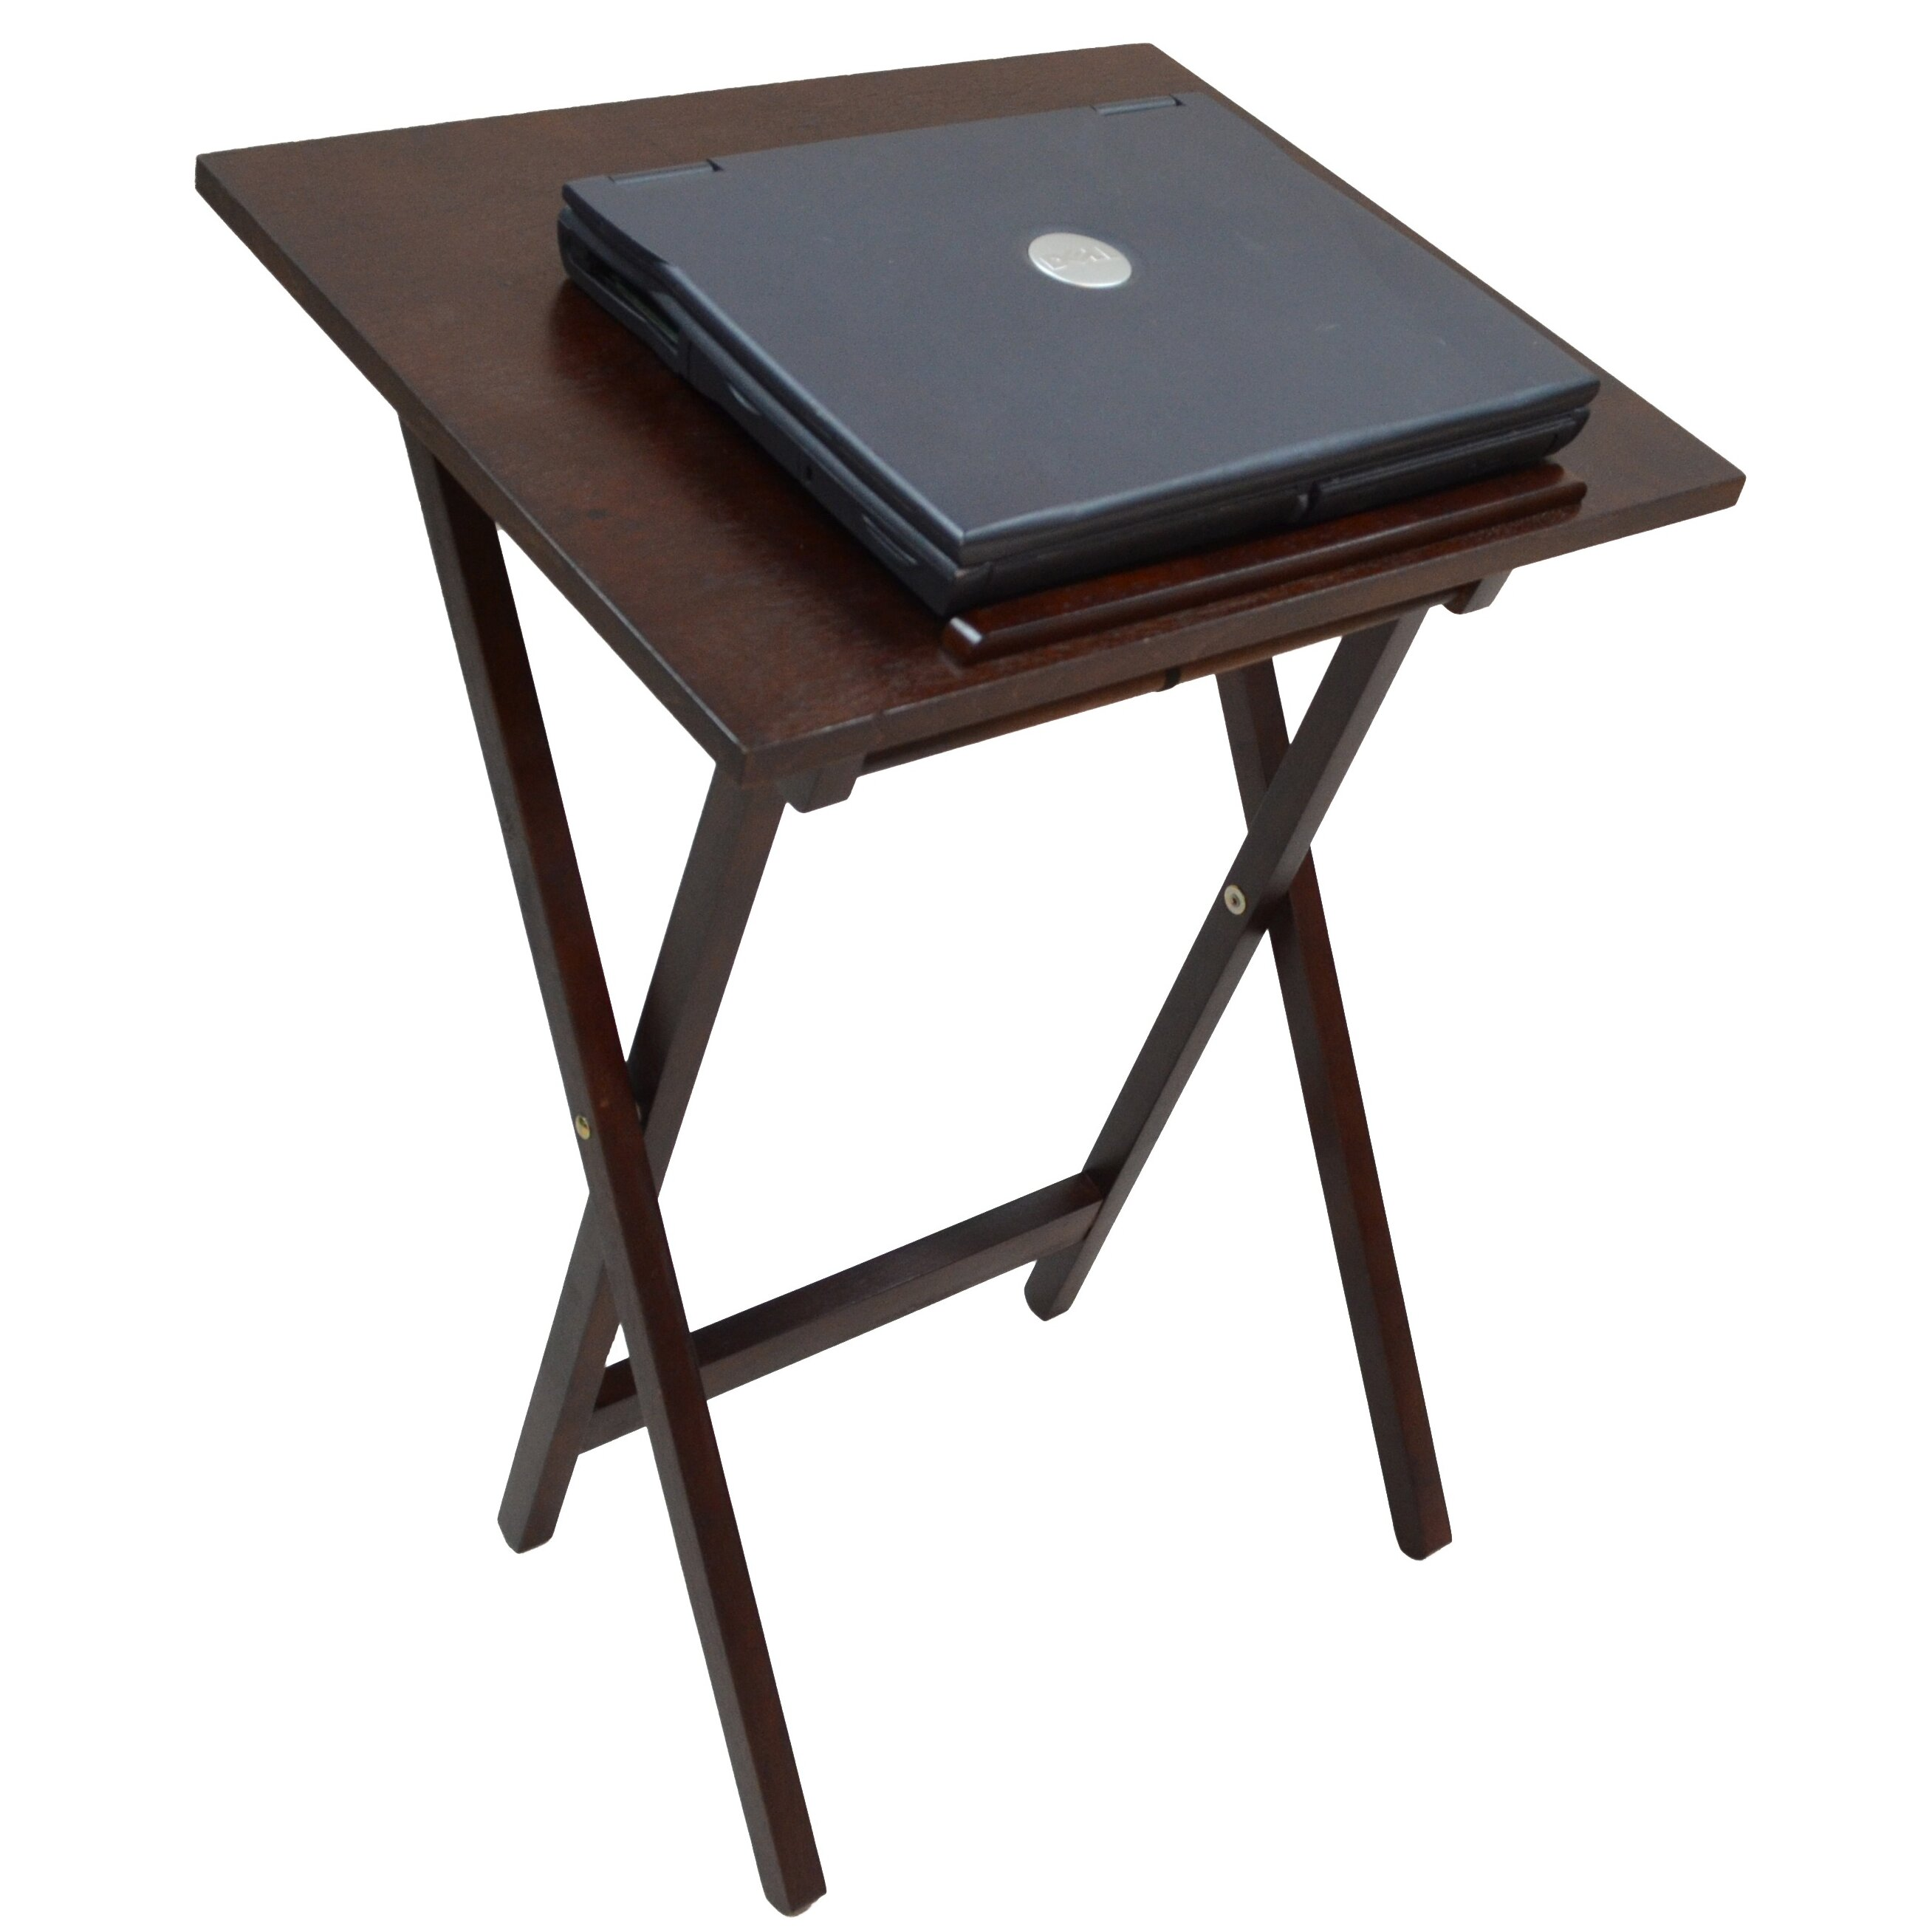 Plow And Hearth Furniture: Plow & Hearth Smart Tray Snack/Laptop Table